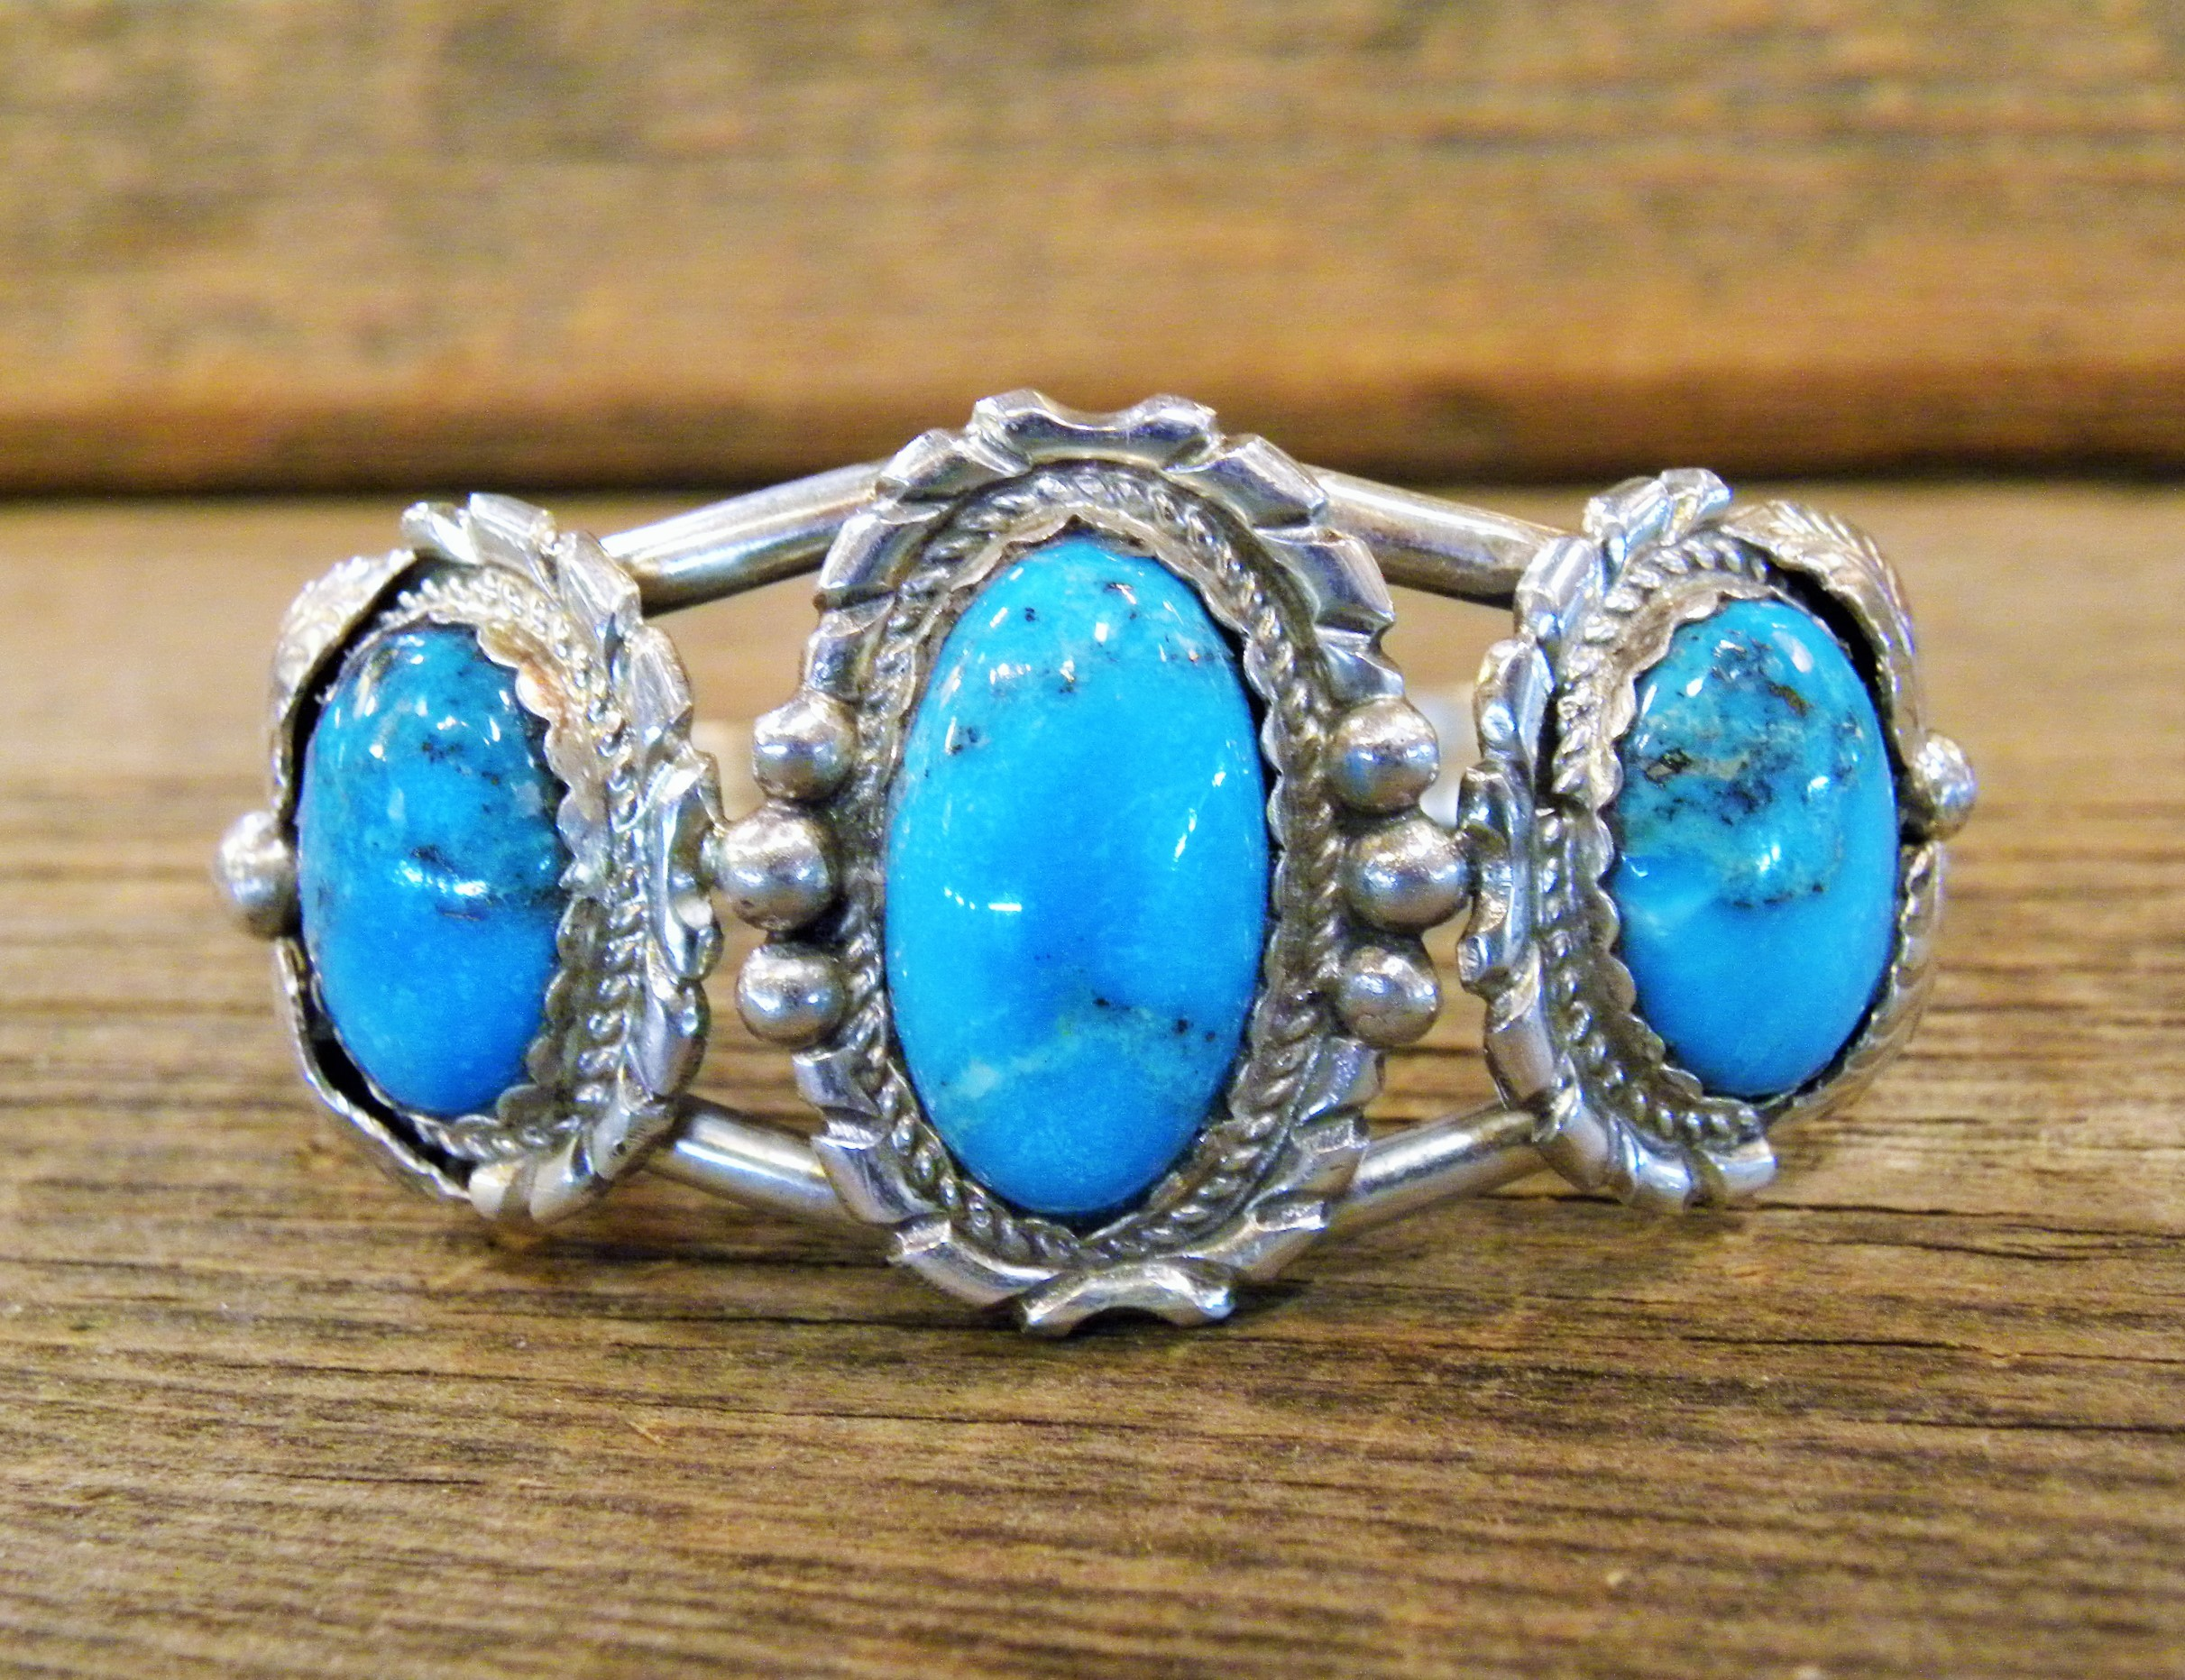 MLAB17 Monroe & Lillie Ashley Kingman Turquoise Bracelet